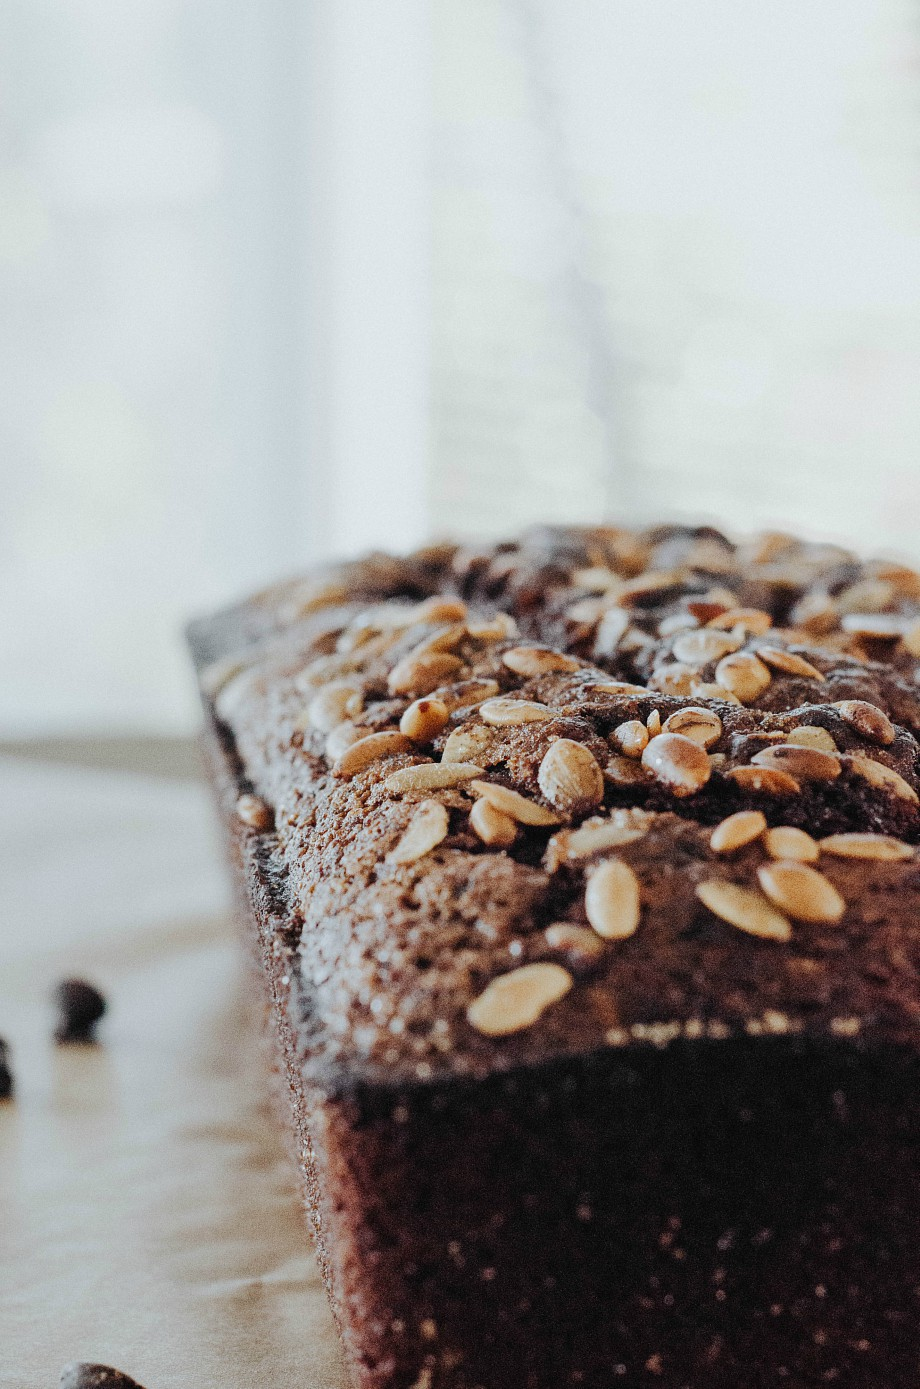 Chocolate Chip Pumpkin Spice Pound Cake With Brown Sugar Pumpkin Seed Topping [ Gluten Free ]